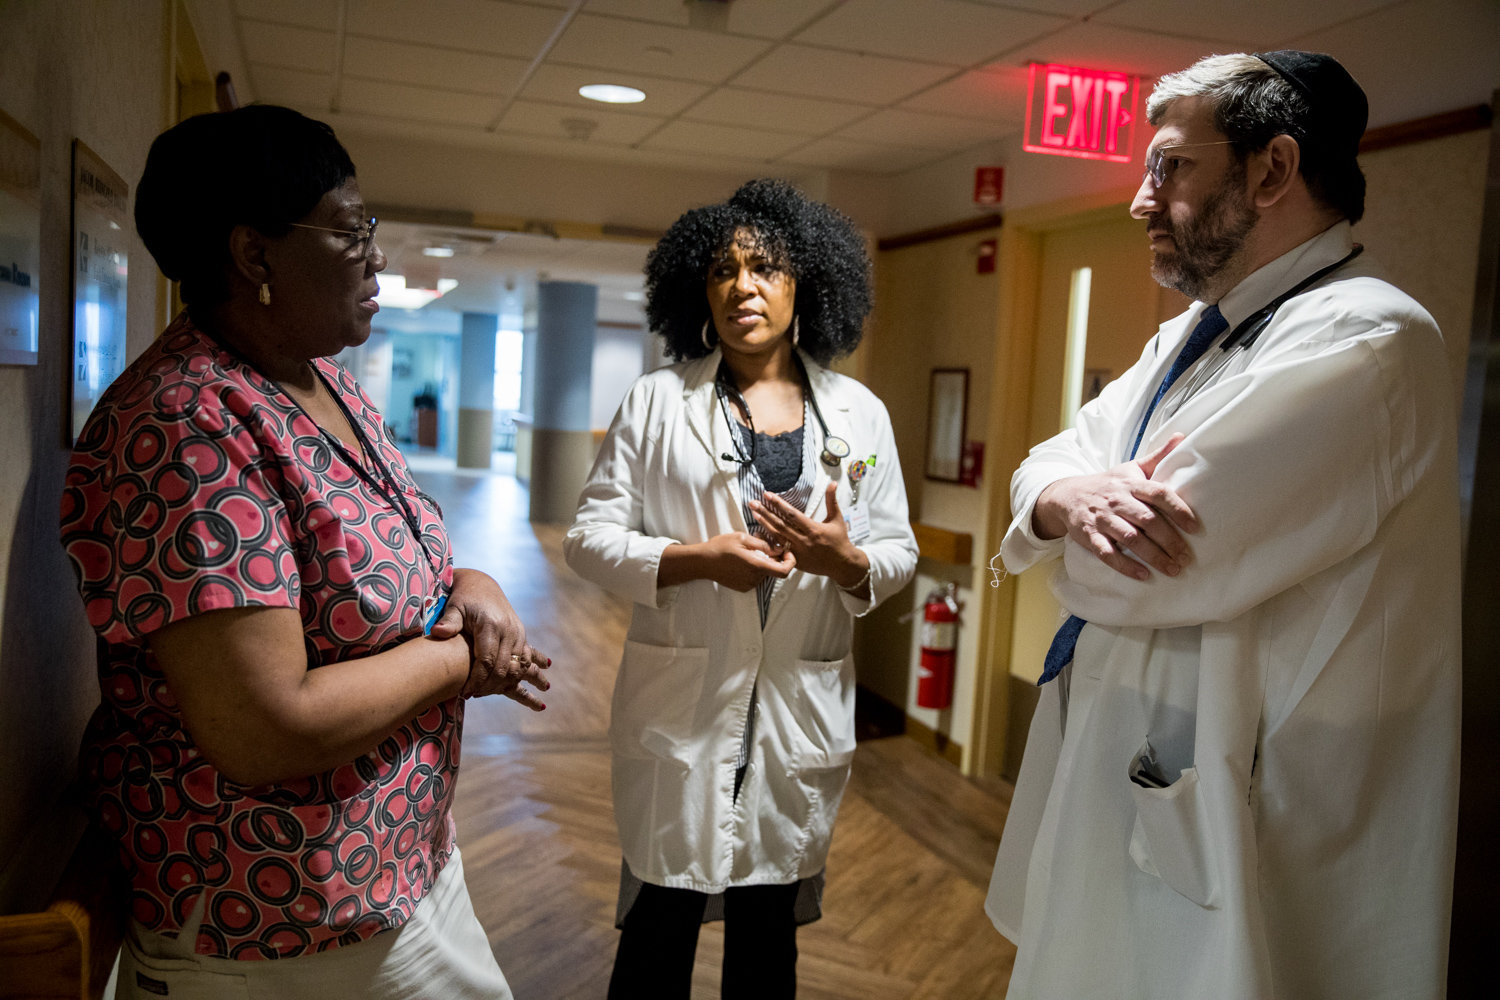 Patricia Salifu, a licensed practical nurse at the Hebrew Home at Riverdale, left, talks with nurse practitioner Sebrina Henderson and medical director Dr. Zachary Palace about a care plan for one of the Palisade Avenue facility's residents.